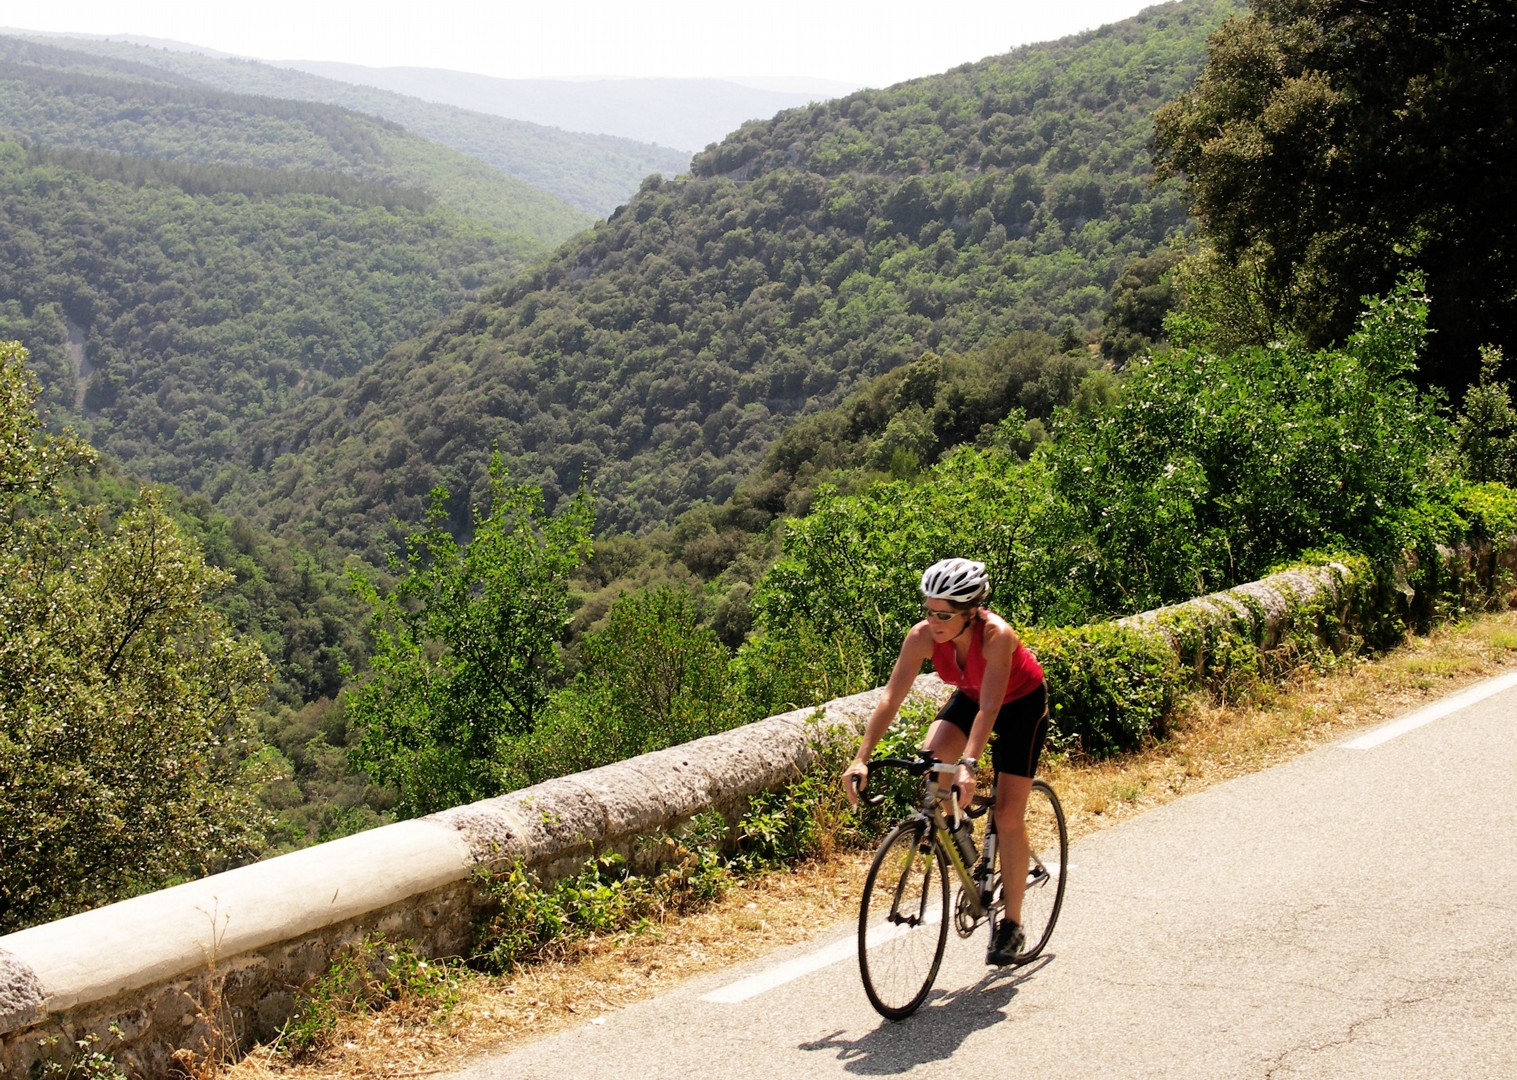 guided-road-cycling-holiday-cape-to-cape-traverse-andalucia-spain-puerto-de-los-vientos.jpg - Southern Spain - Andalucia - Cape to Cape Traverse - Guided Road Cycling Holiday - Road Cycling